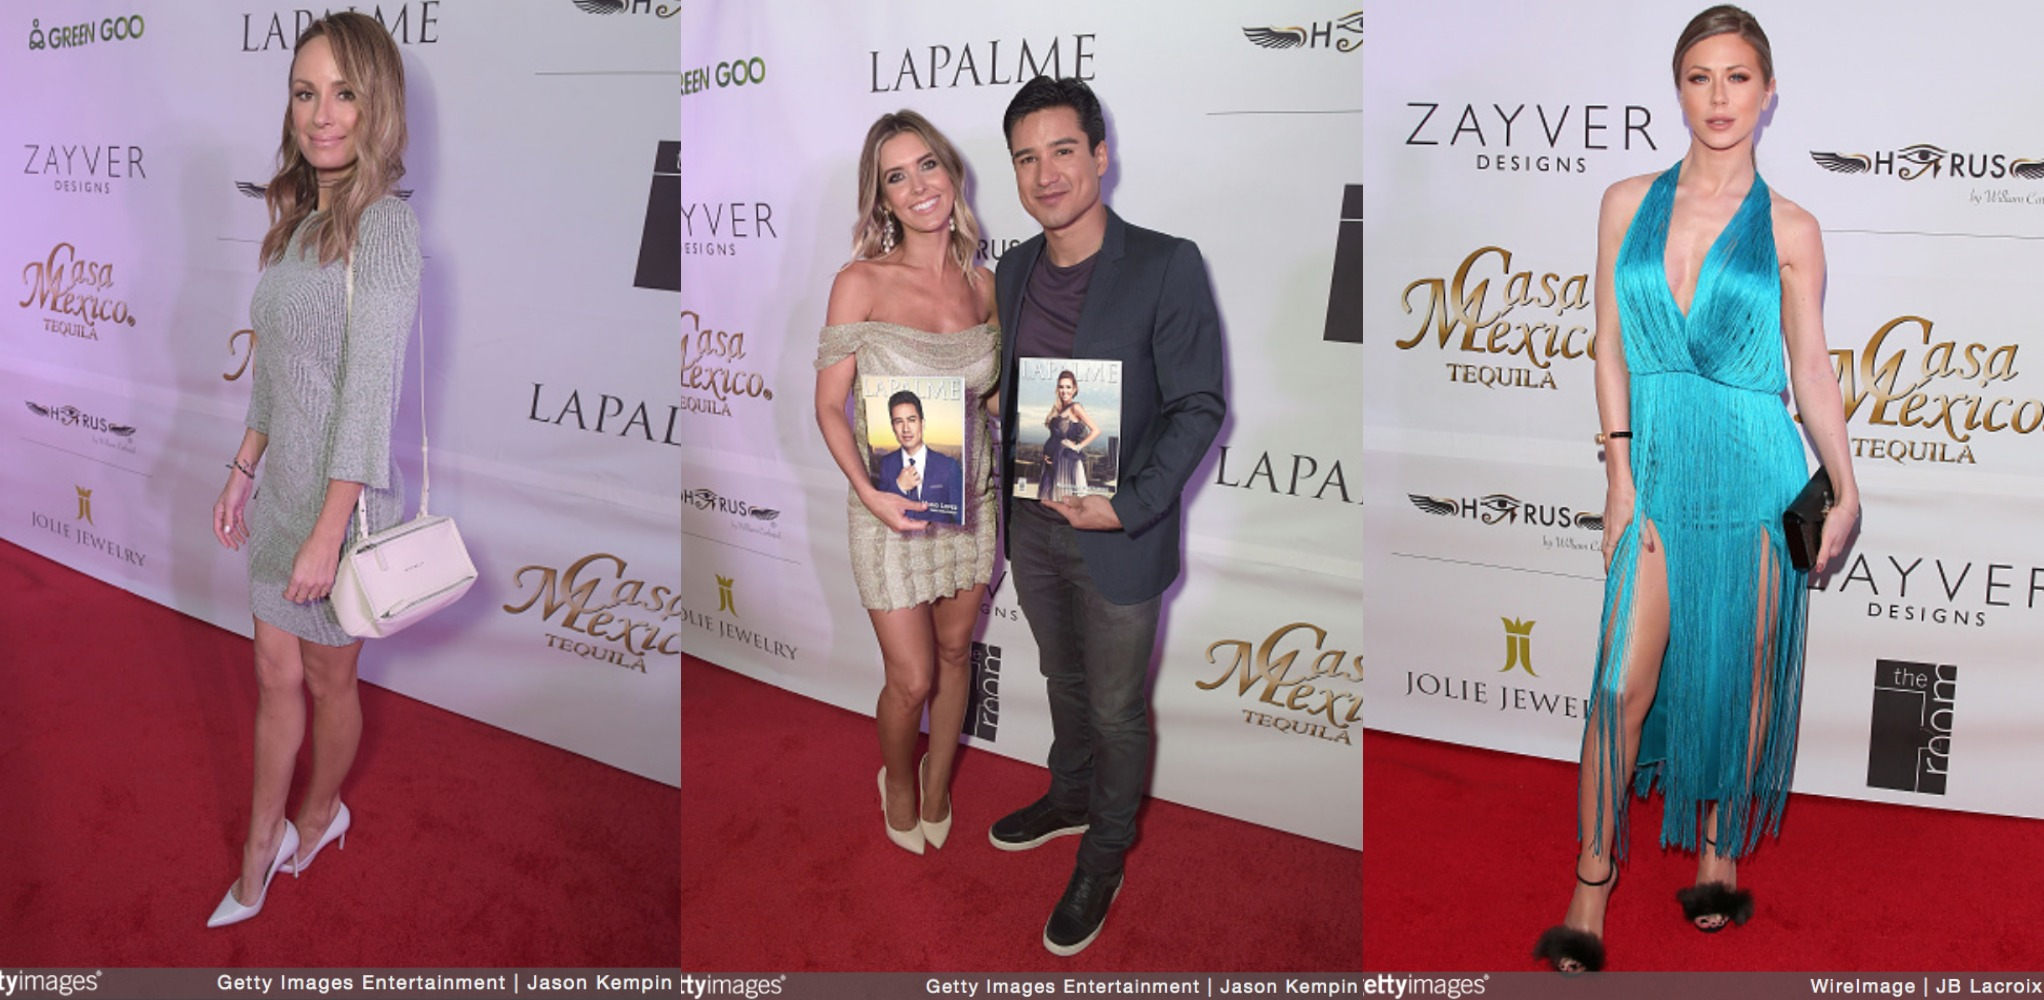 LAPALME Spring Issue Release Party